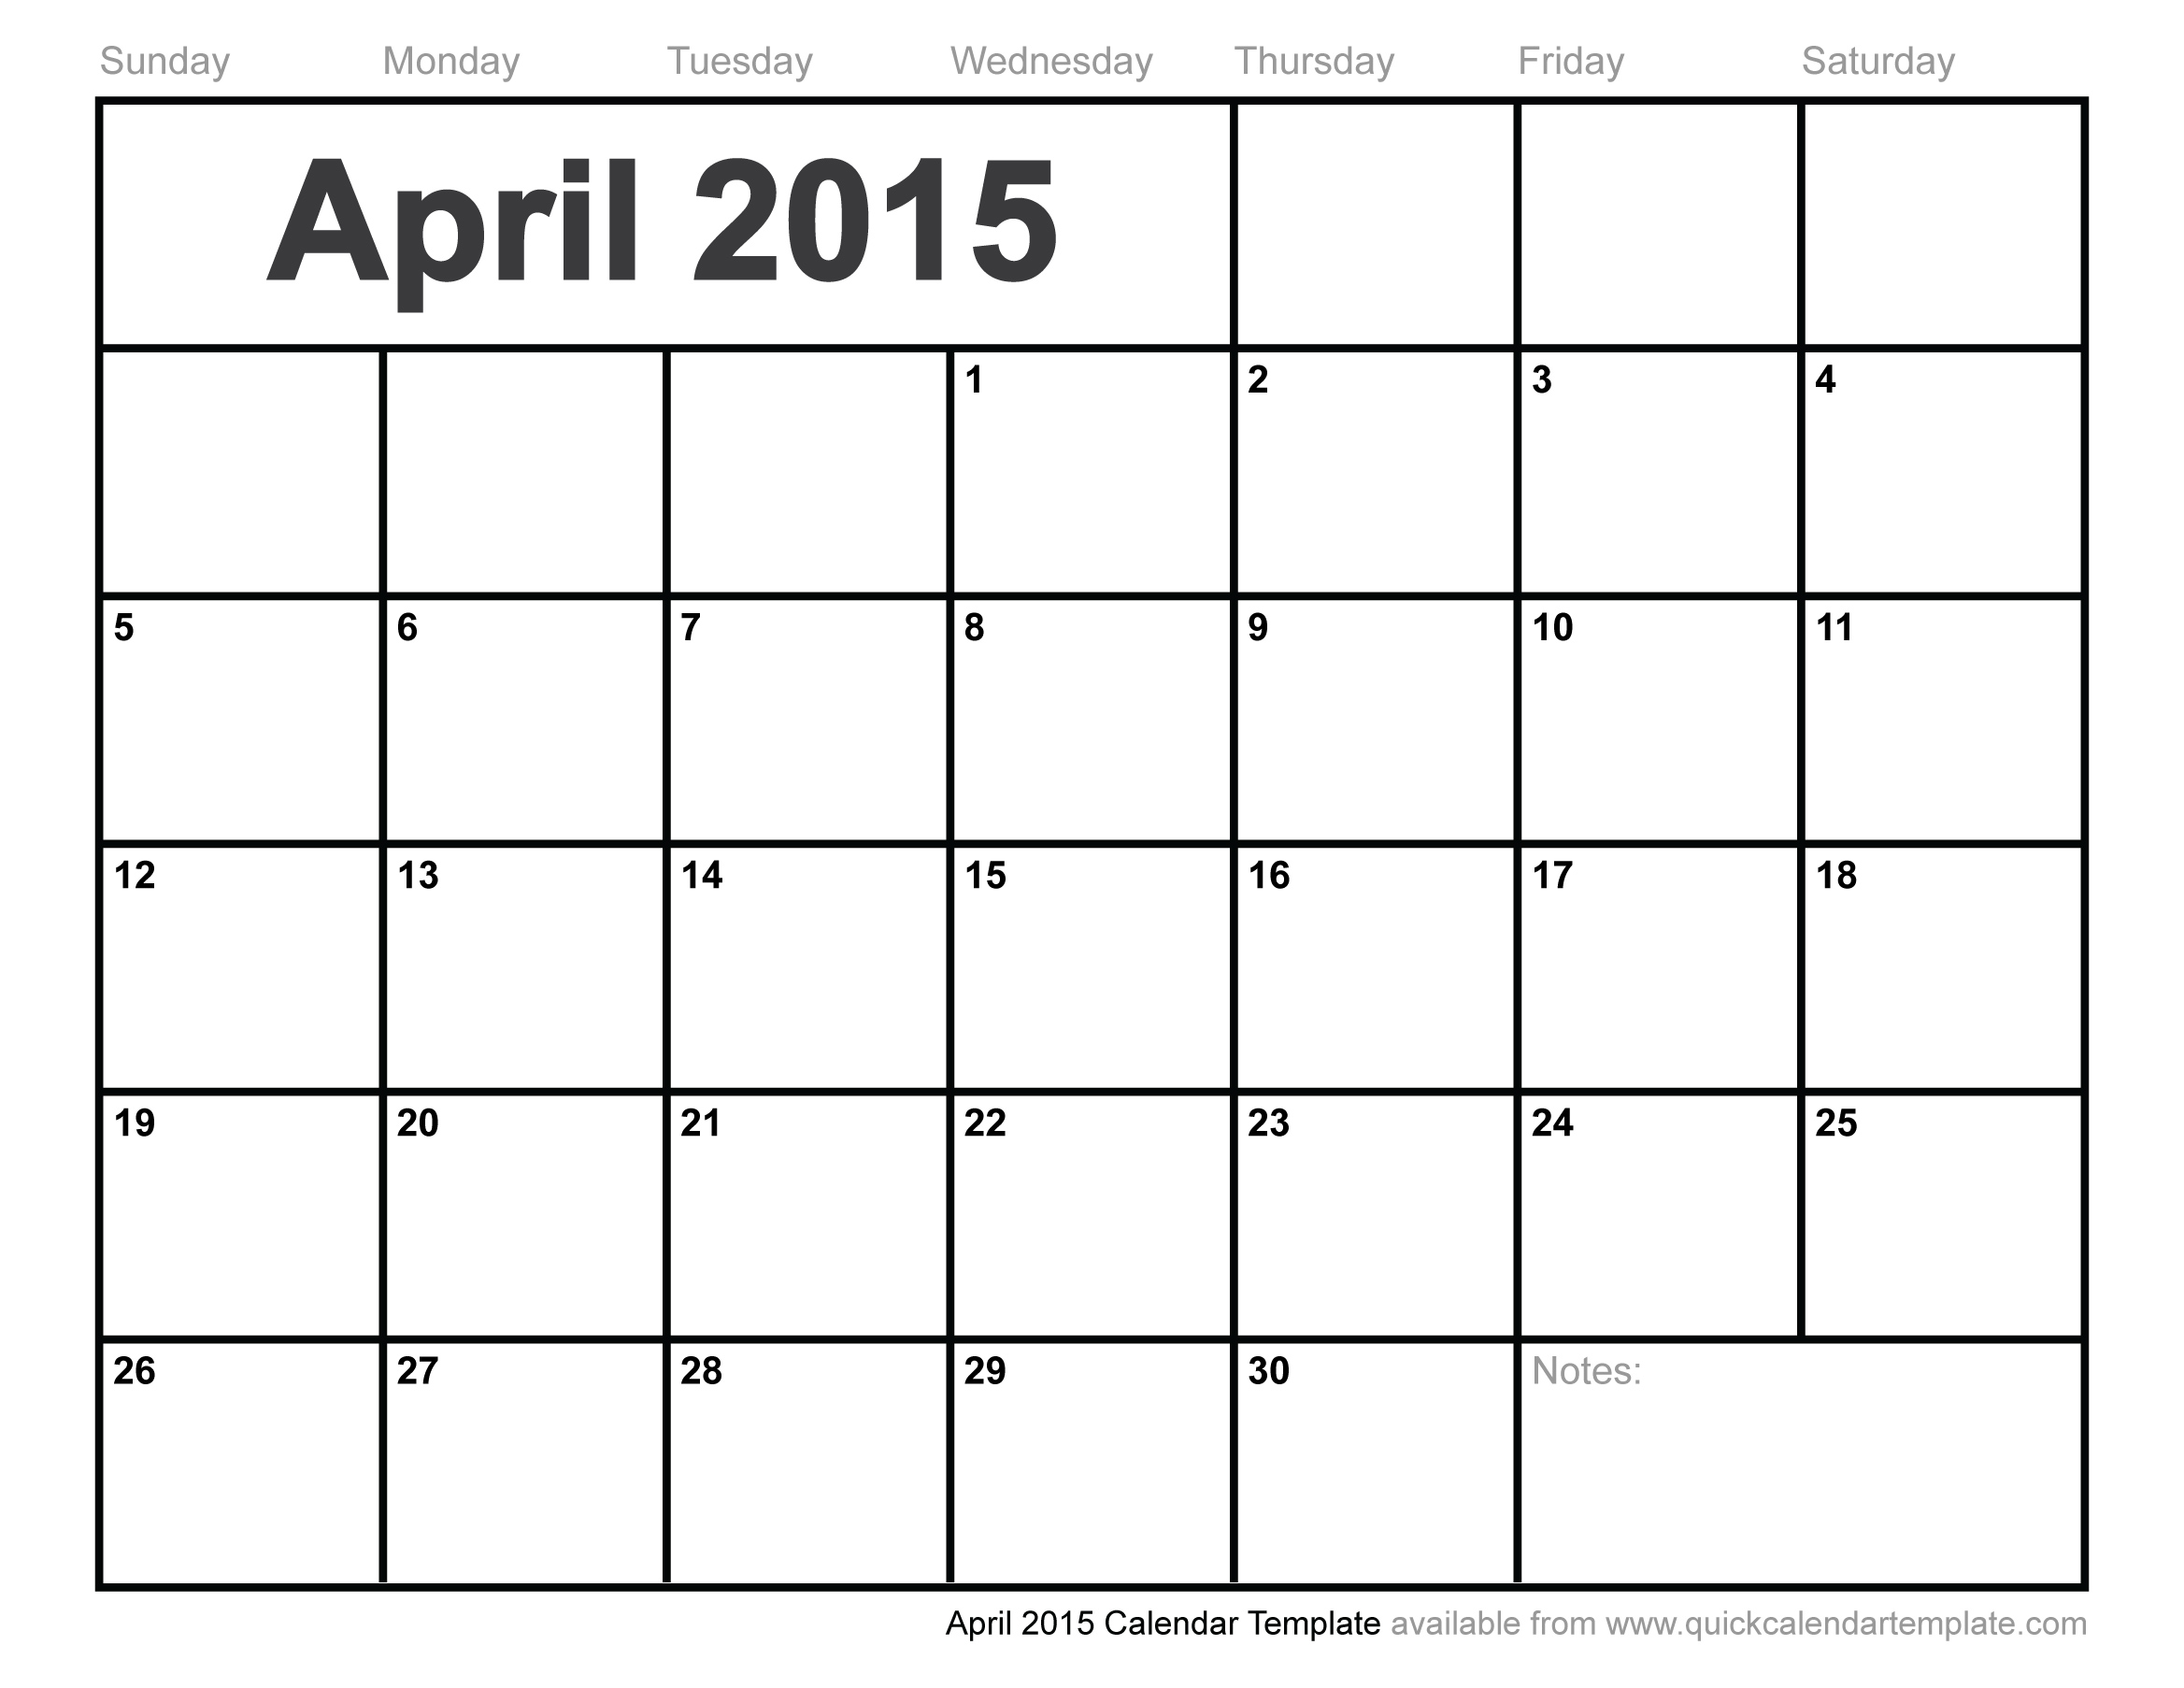 2015 calendar free download